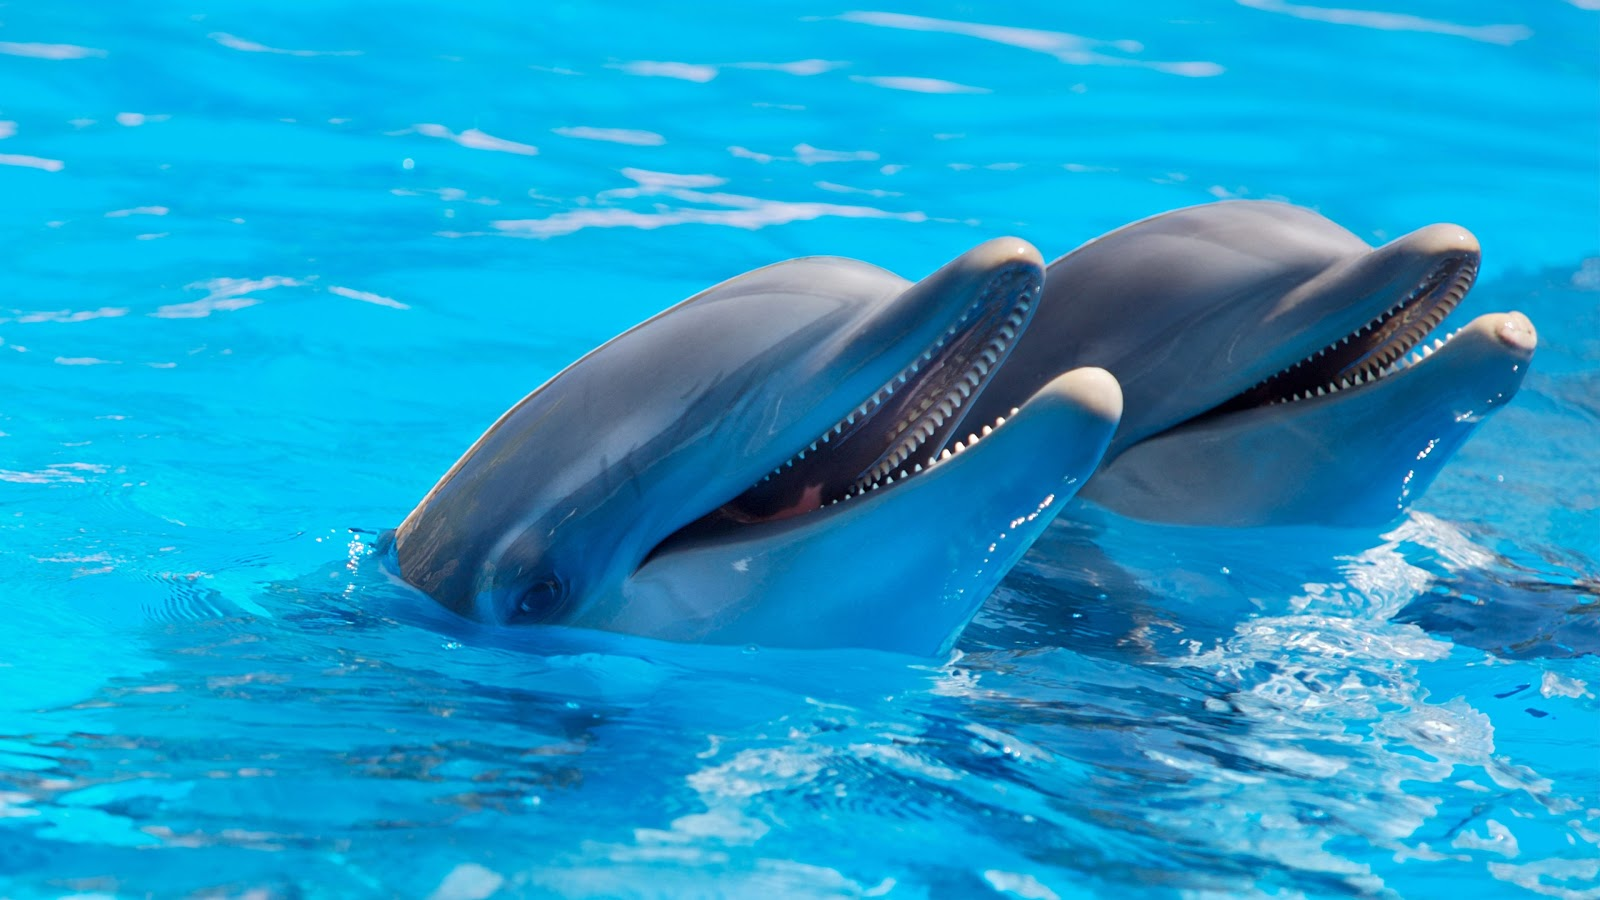 2-dolphin-during-daytime-fish-images